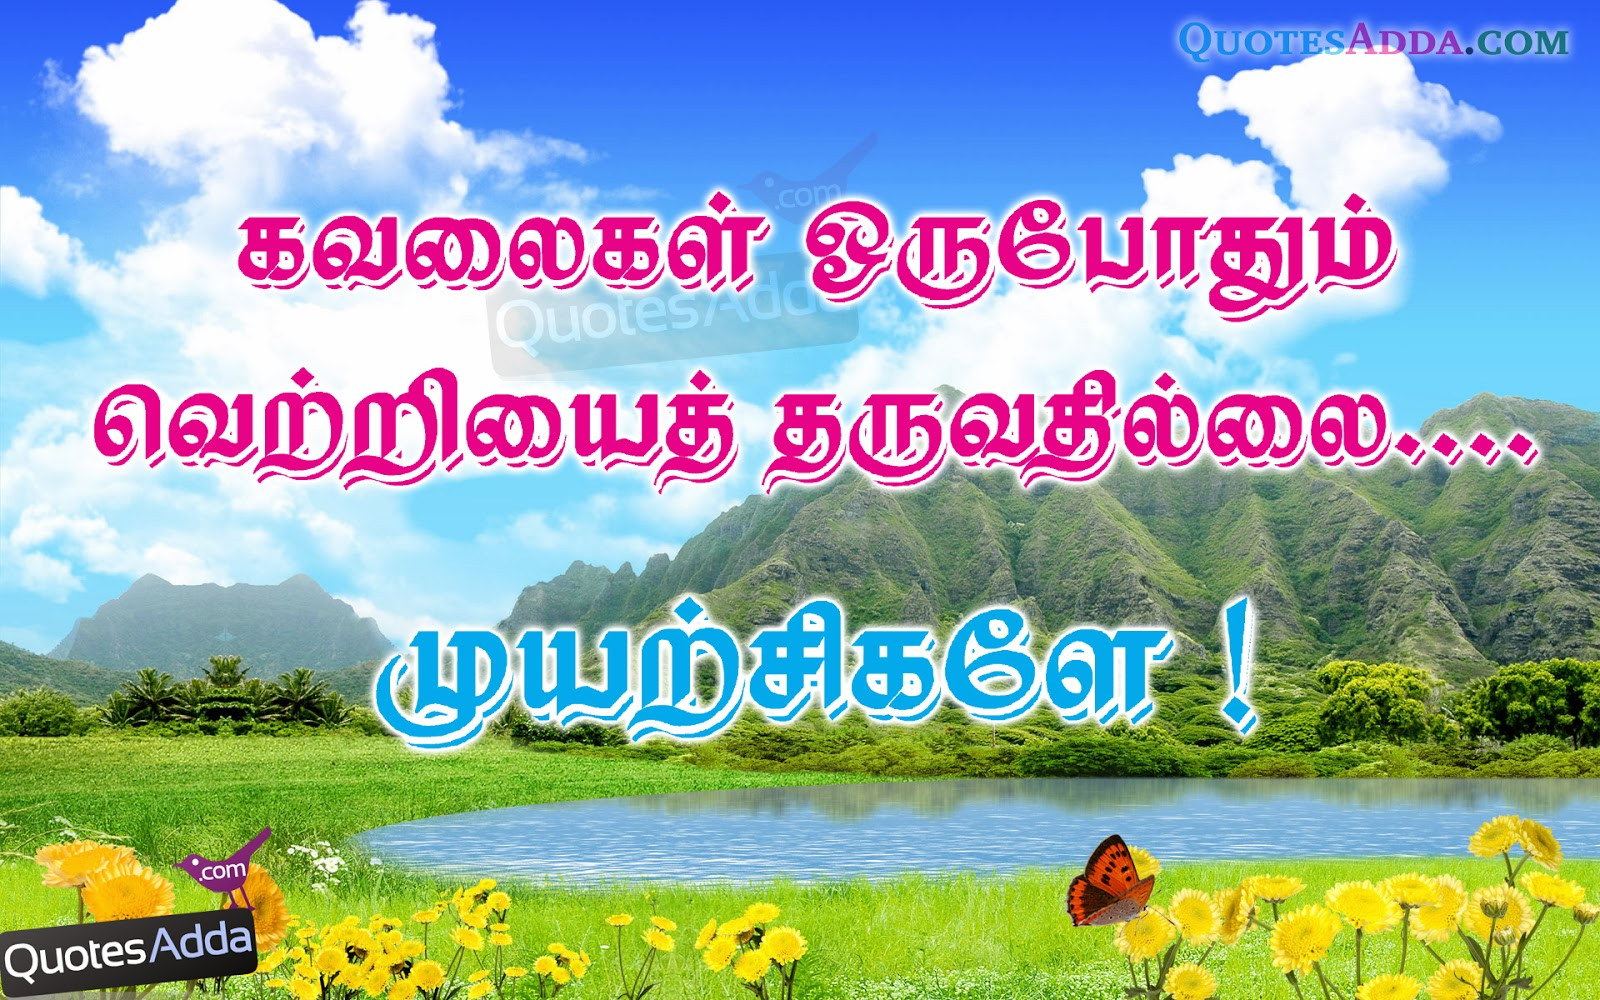 beautiful life quotes in tamil images